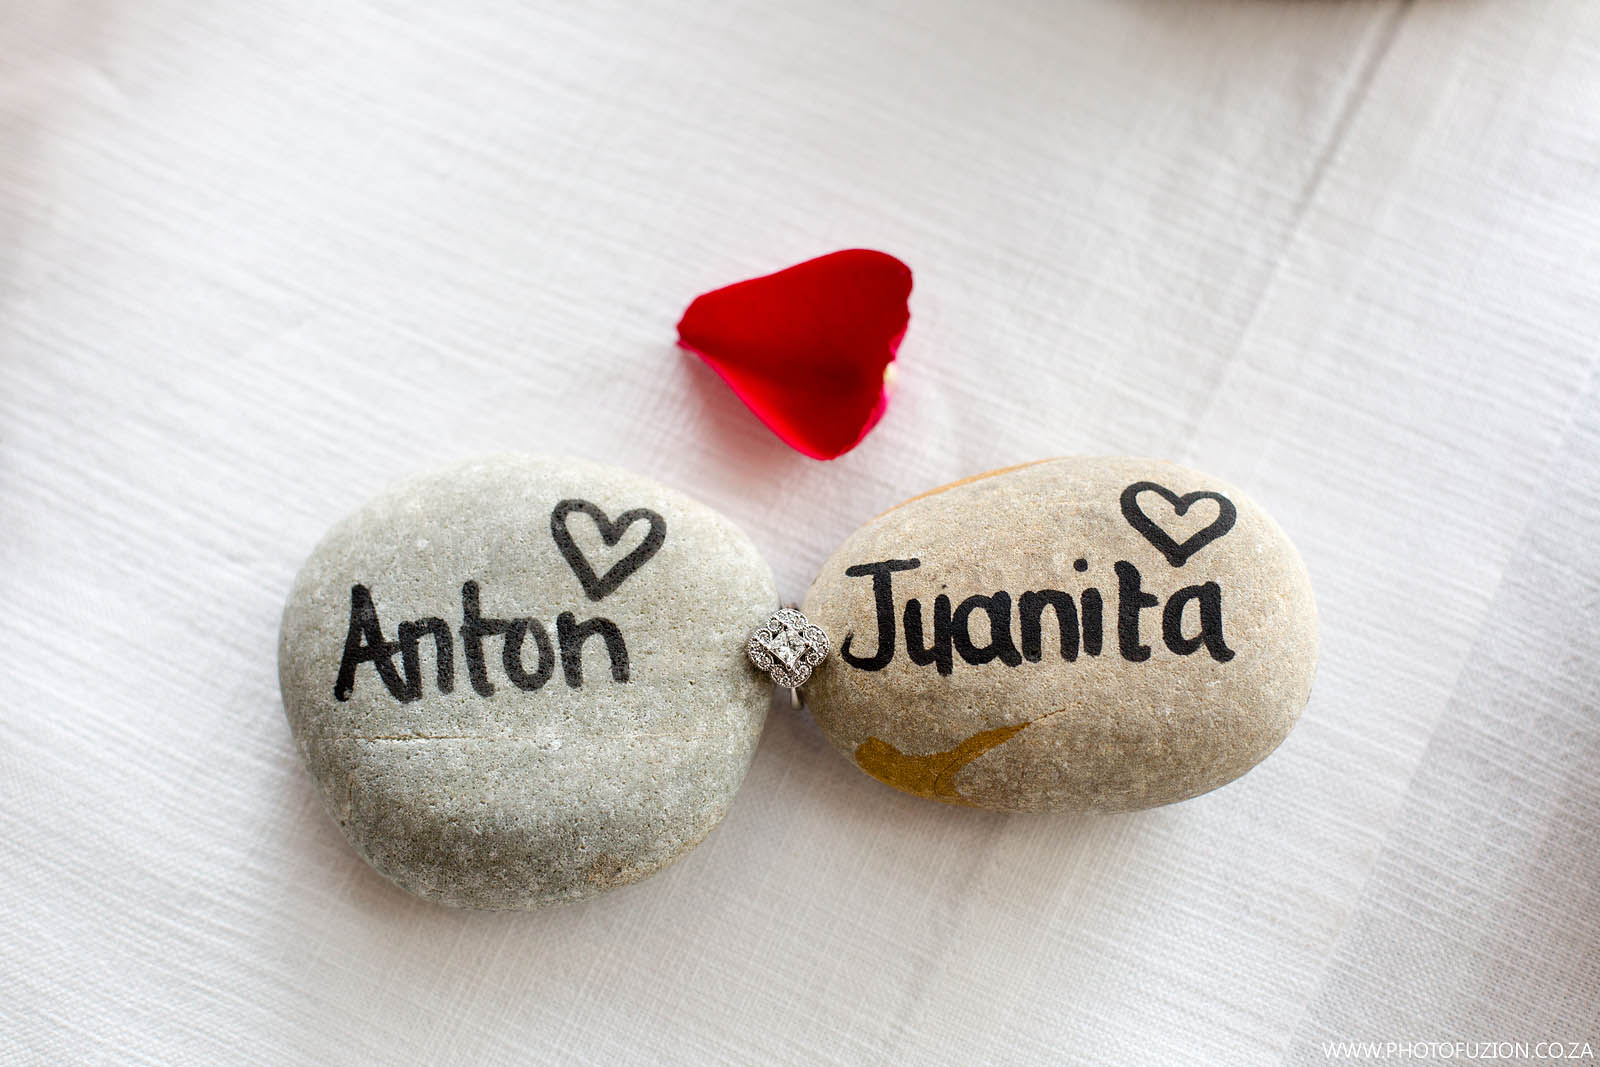 Anton and Juanita marriage proposal at Tinswalo